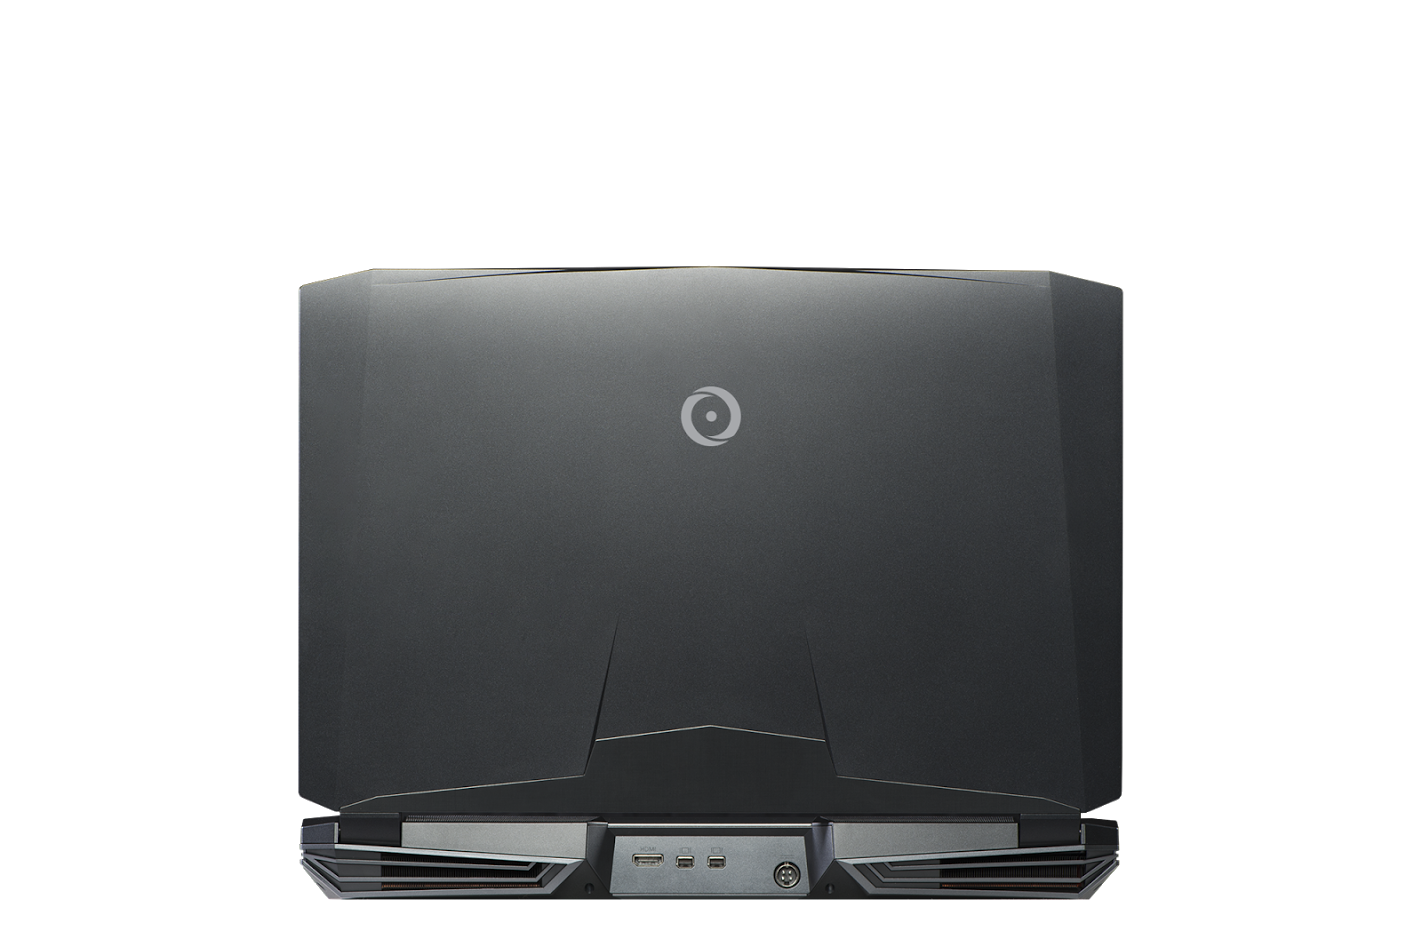 ORIGIN PC Launches Their Most Powerful Laptop Line Ever ... Laptop Back Png